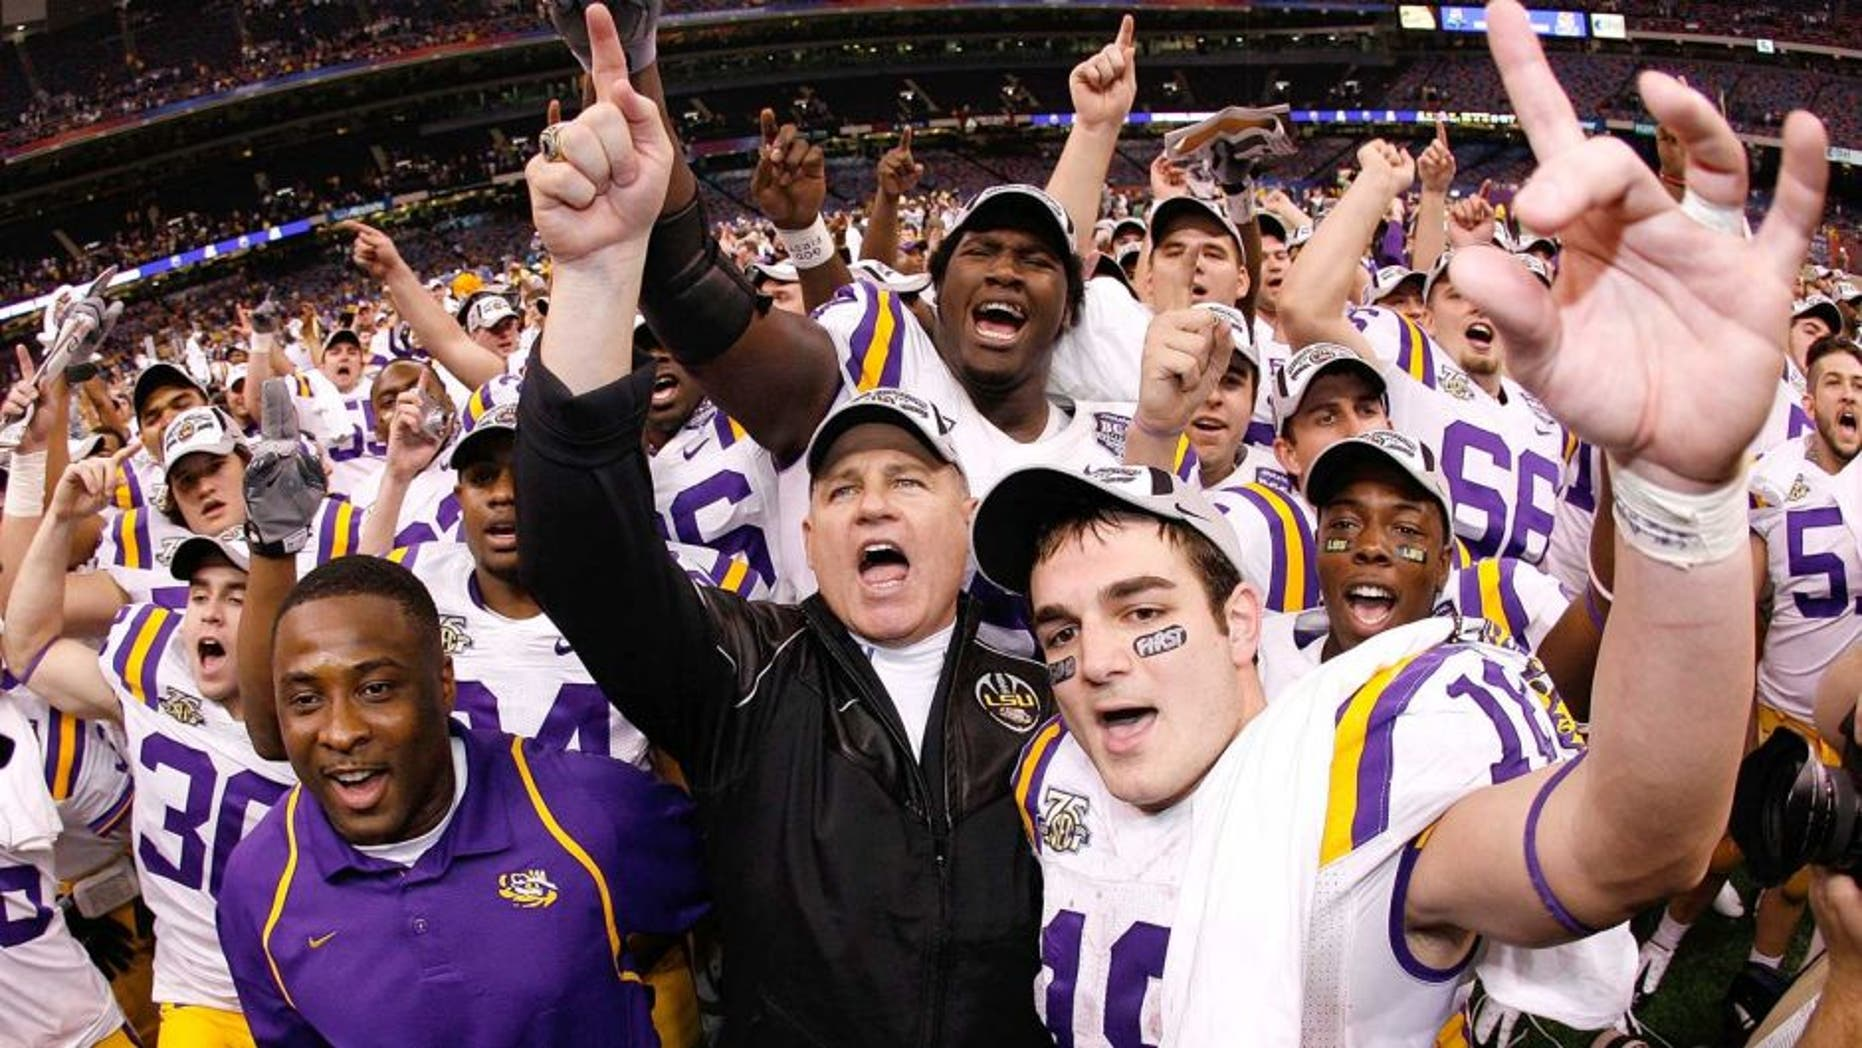 NEW ORLEANS - JANUARY 07: Head coach Les Miles of the Louisiana State University Tigers celebrates with his team after defeating the Ohio State Buckeyes 38-24 in the AllState BCS National Championship on January 7, 2008 at the Louisiana Superdome in New Orleans, Louisiana. (Photo by Chris Graythen/Getty Images)